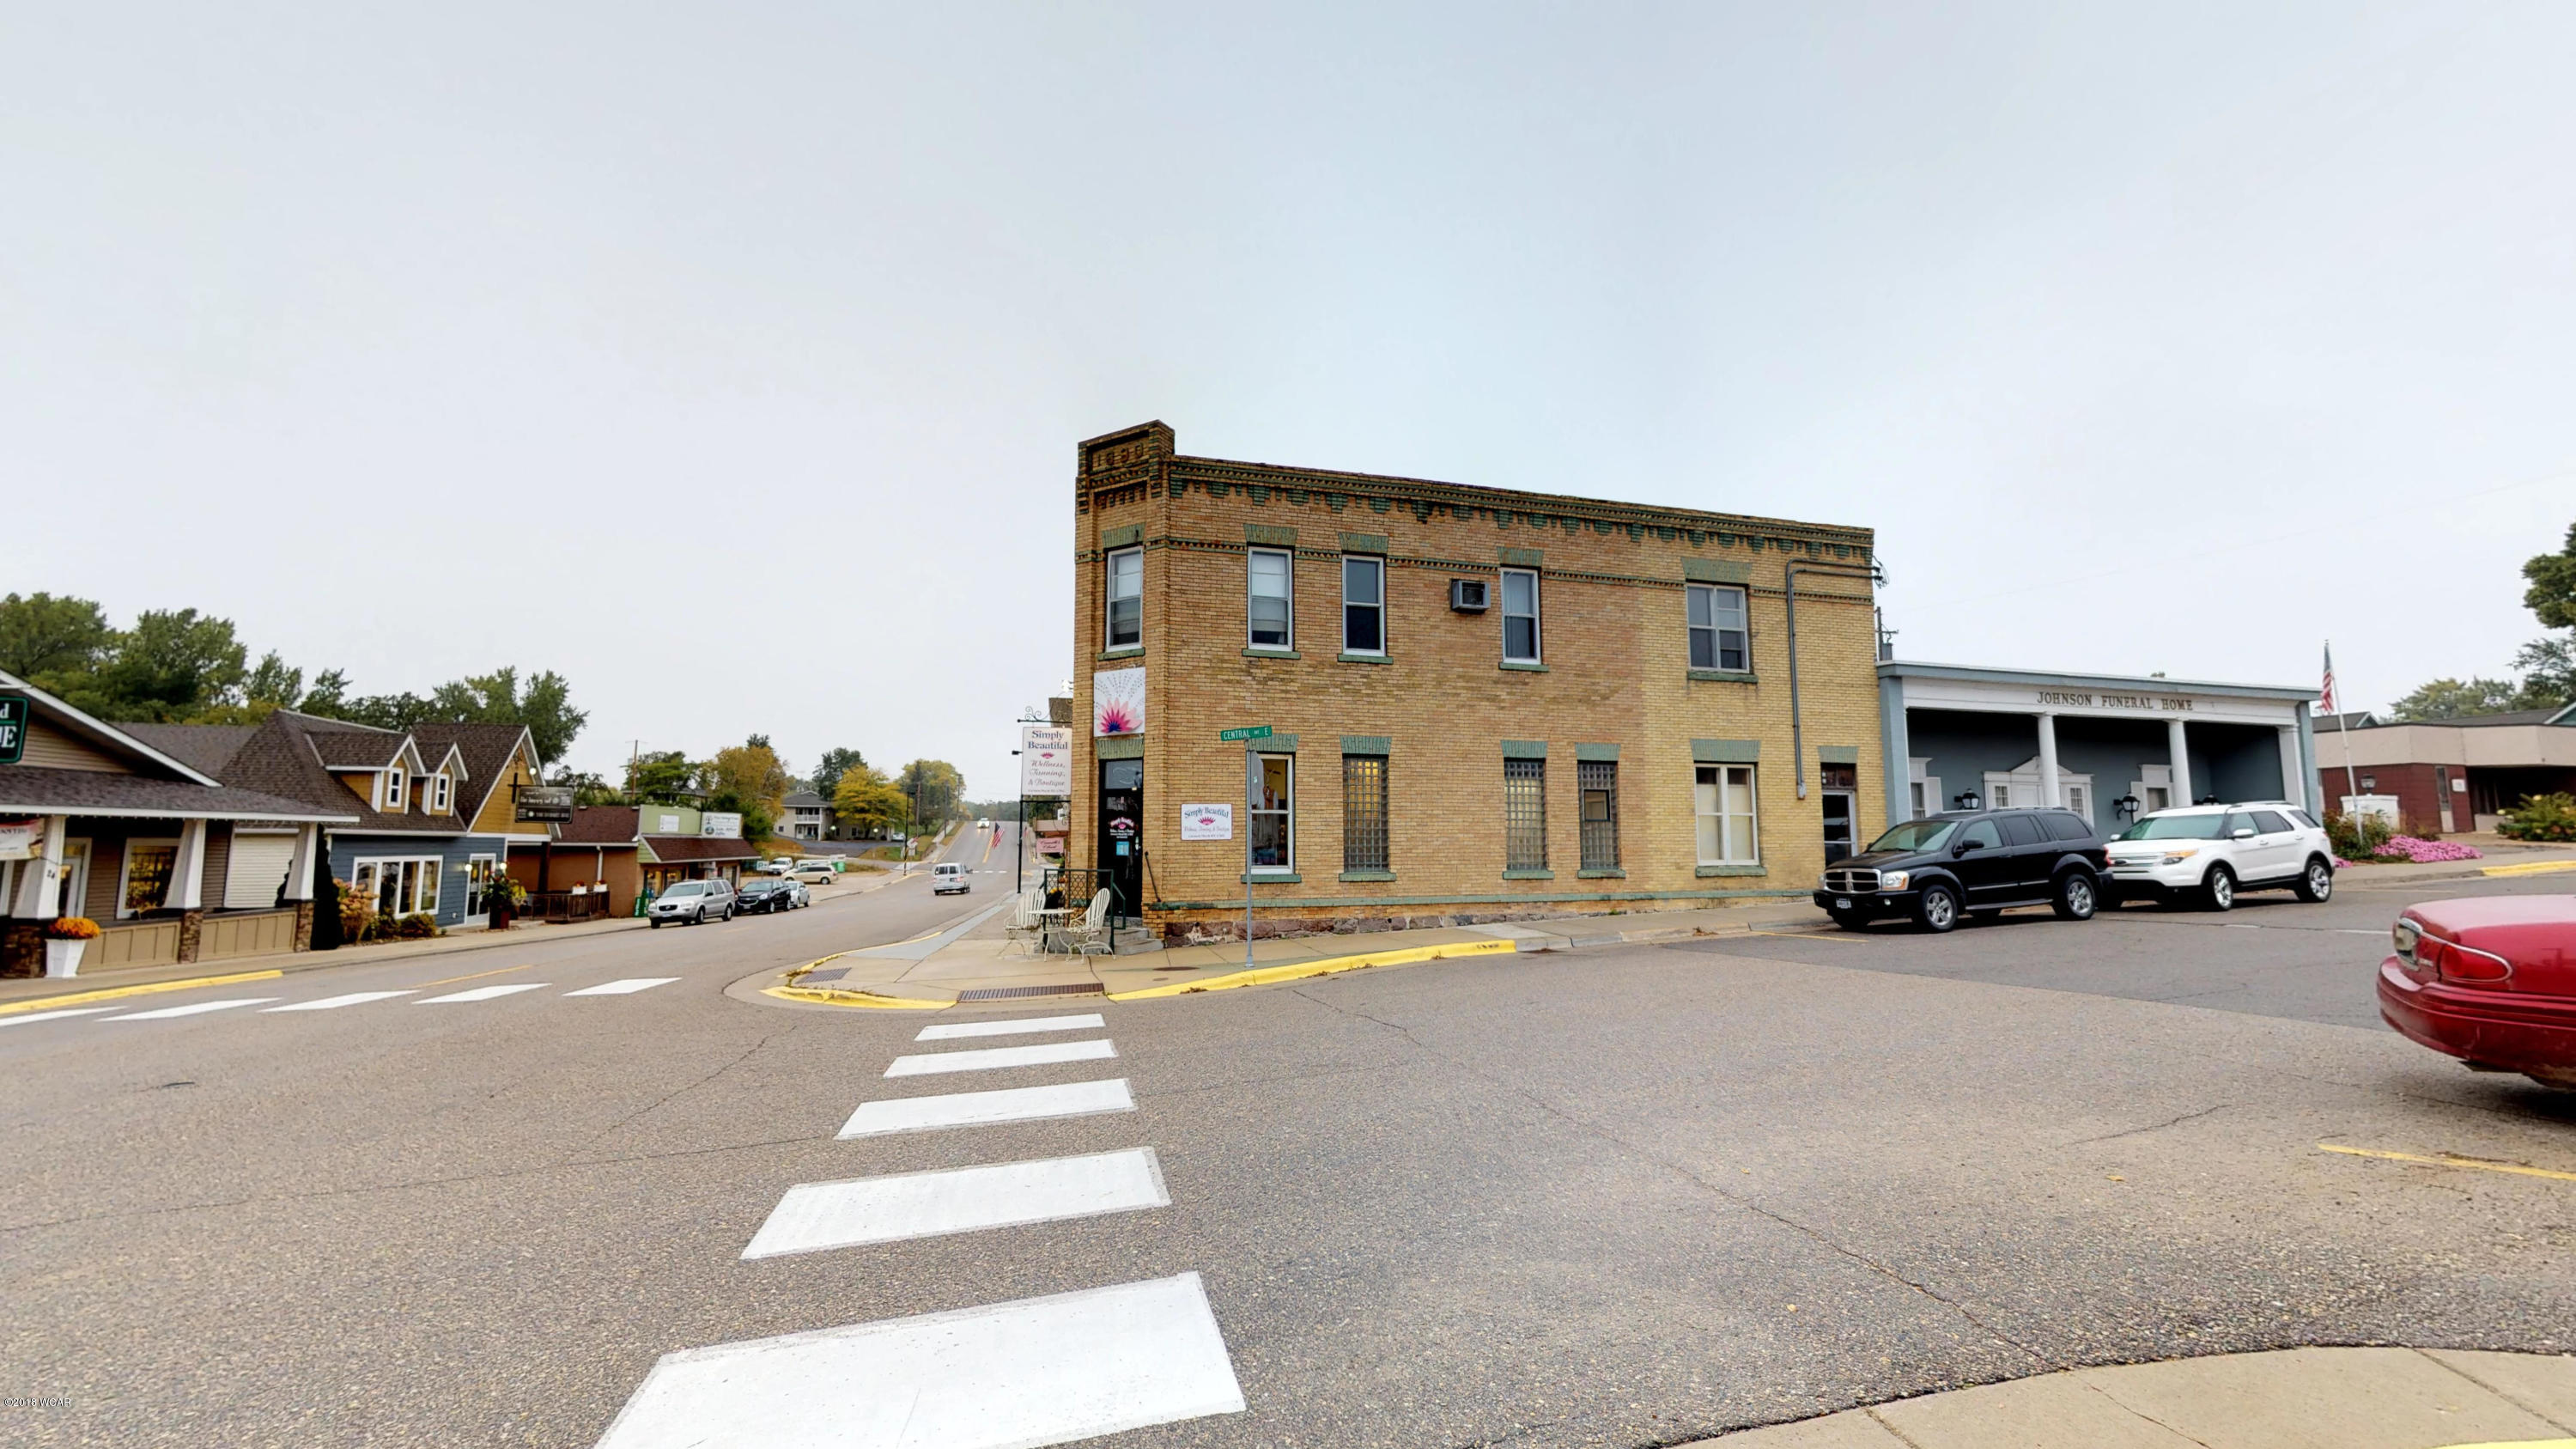 9 N Main,New London,Business opportunity,N Main,6032535